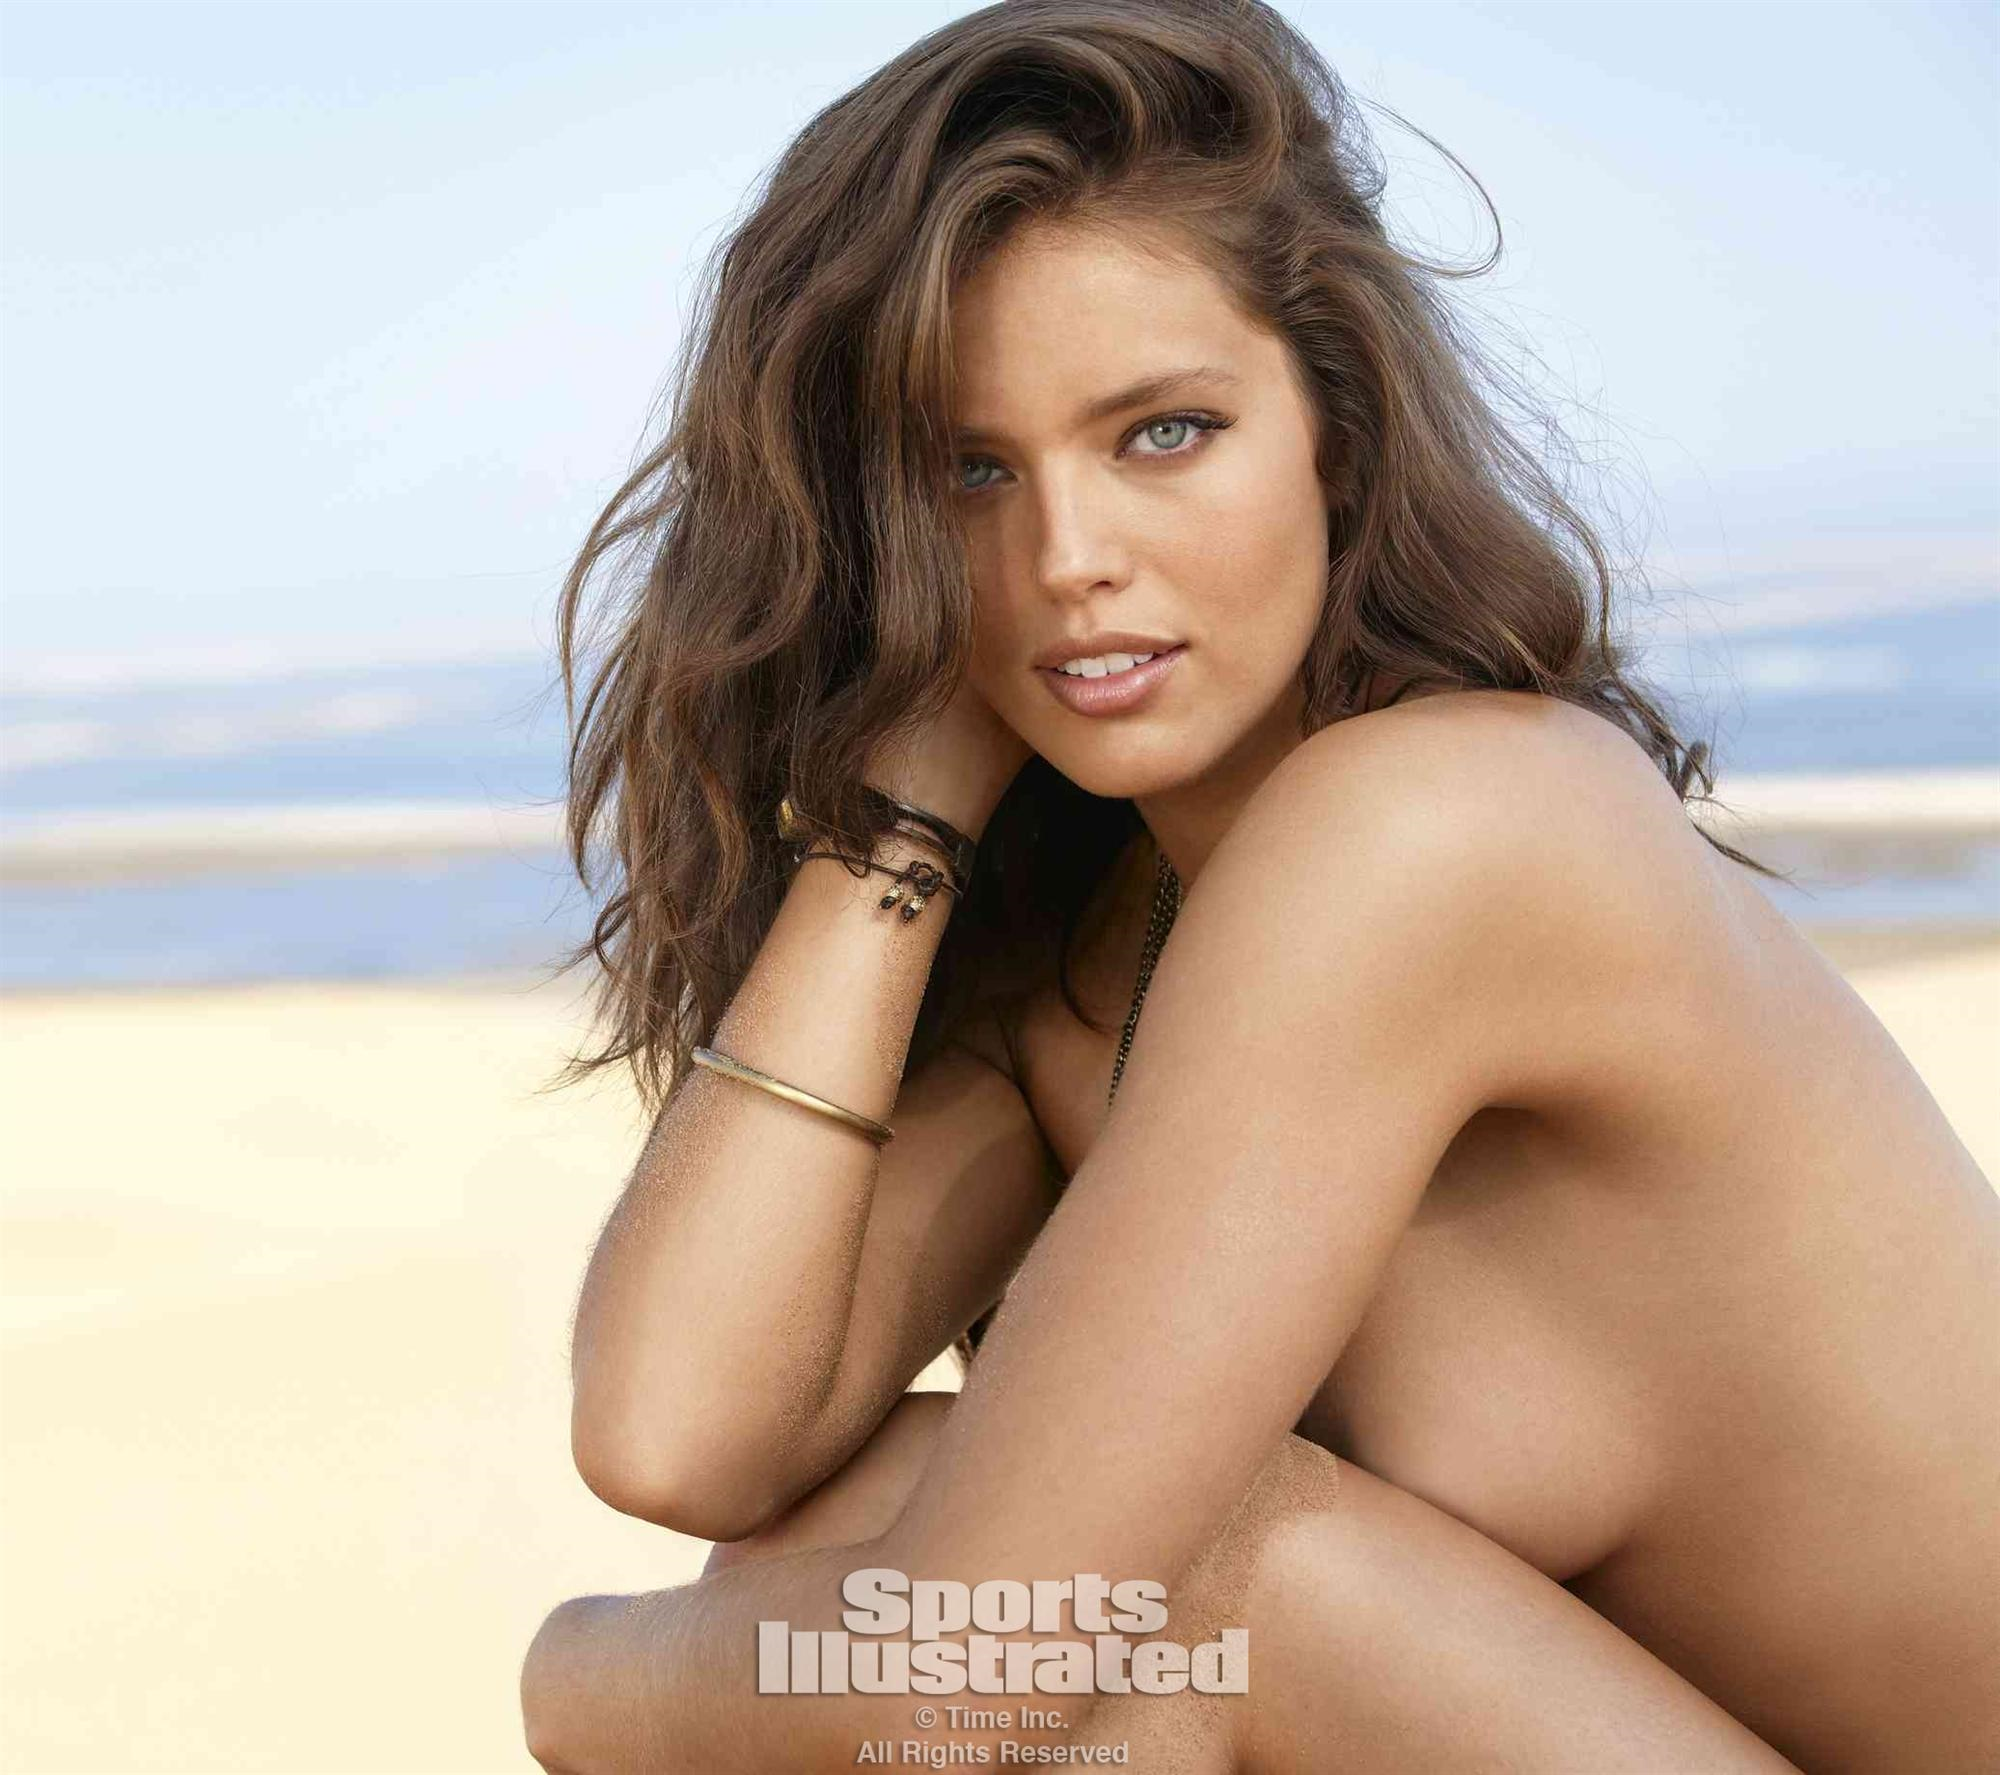 emily didonato nude   12 pictures in an infinite scroll